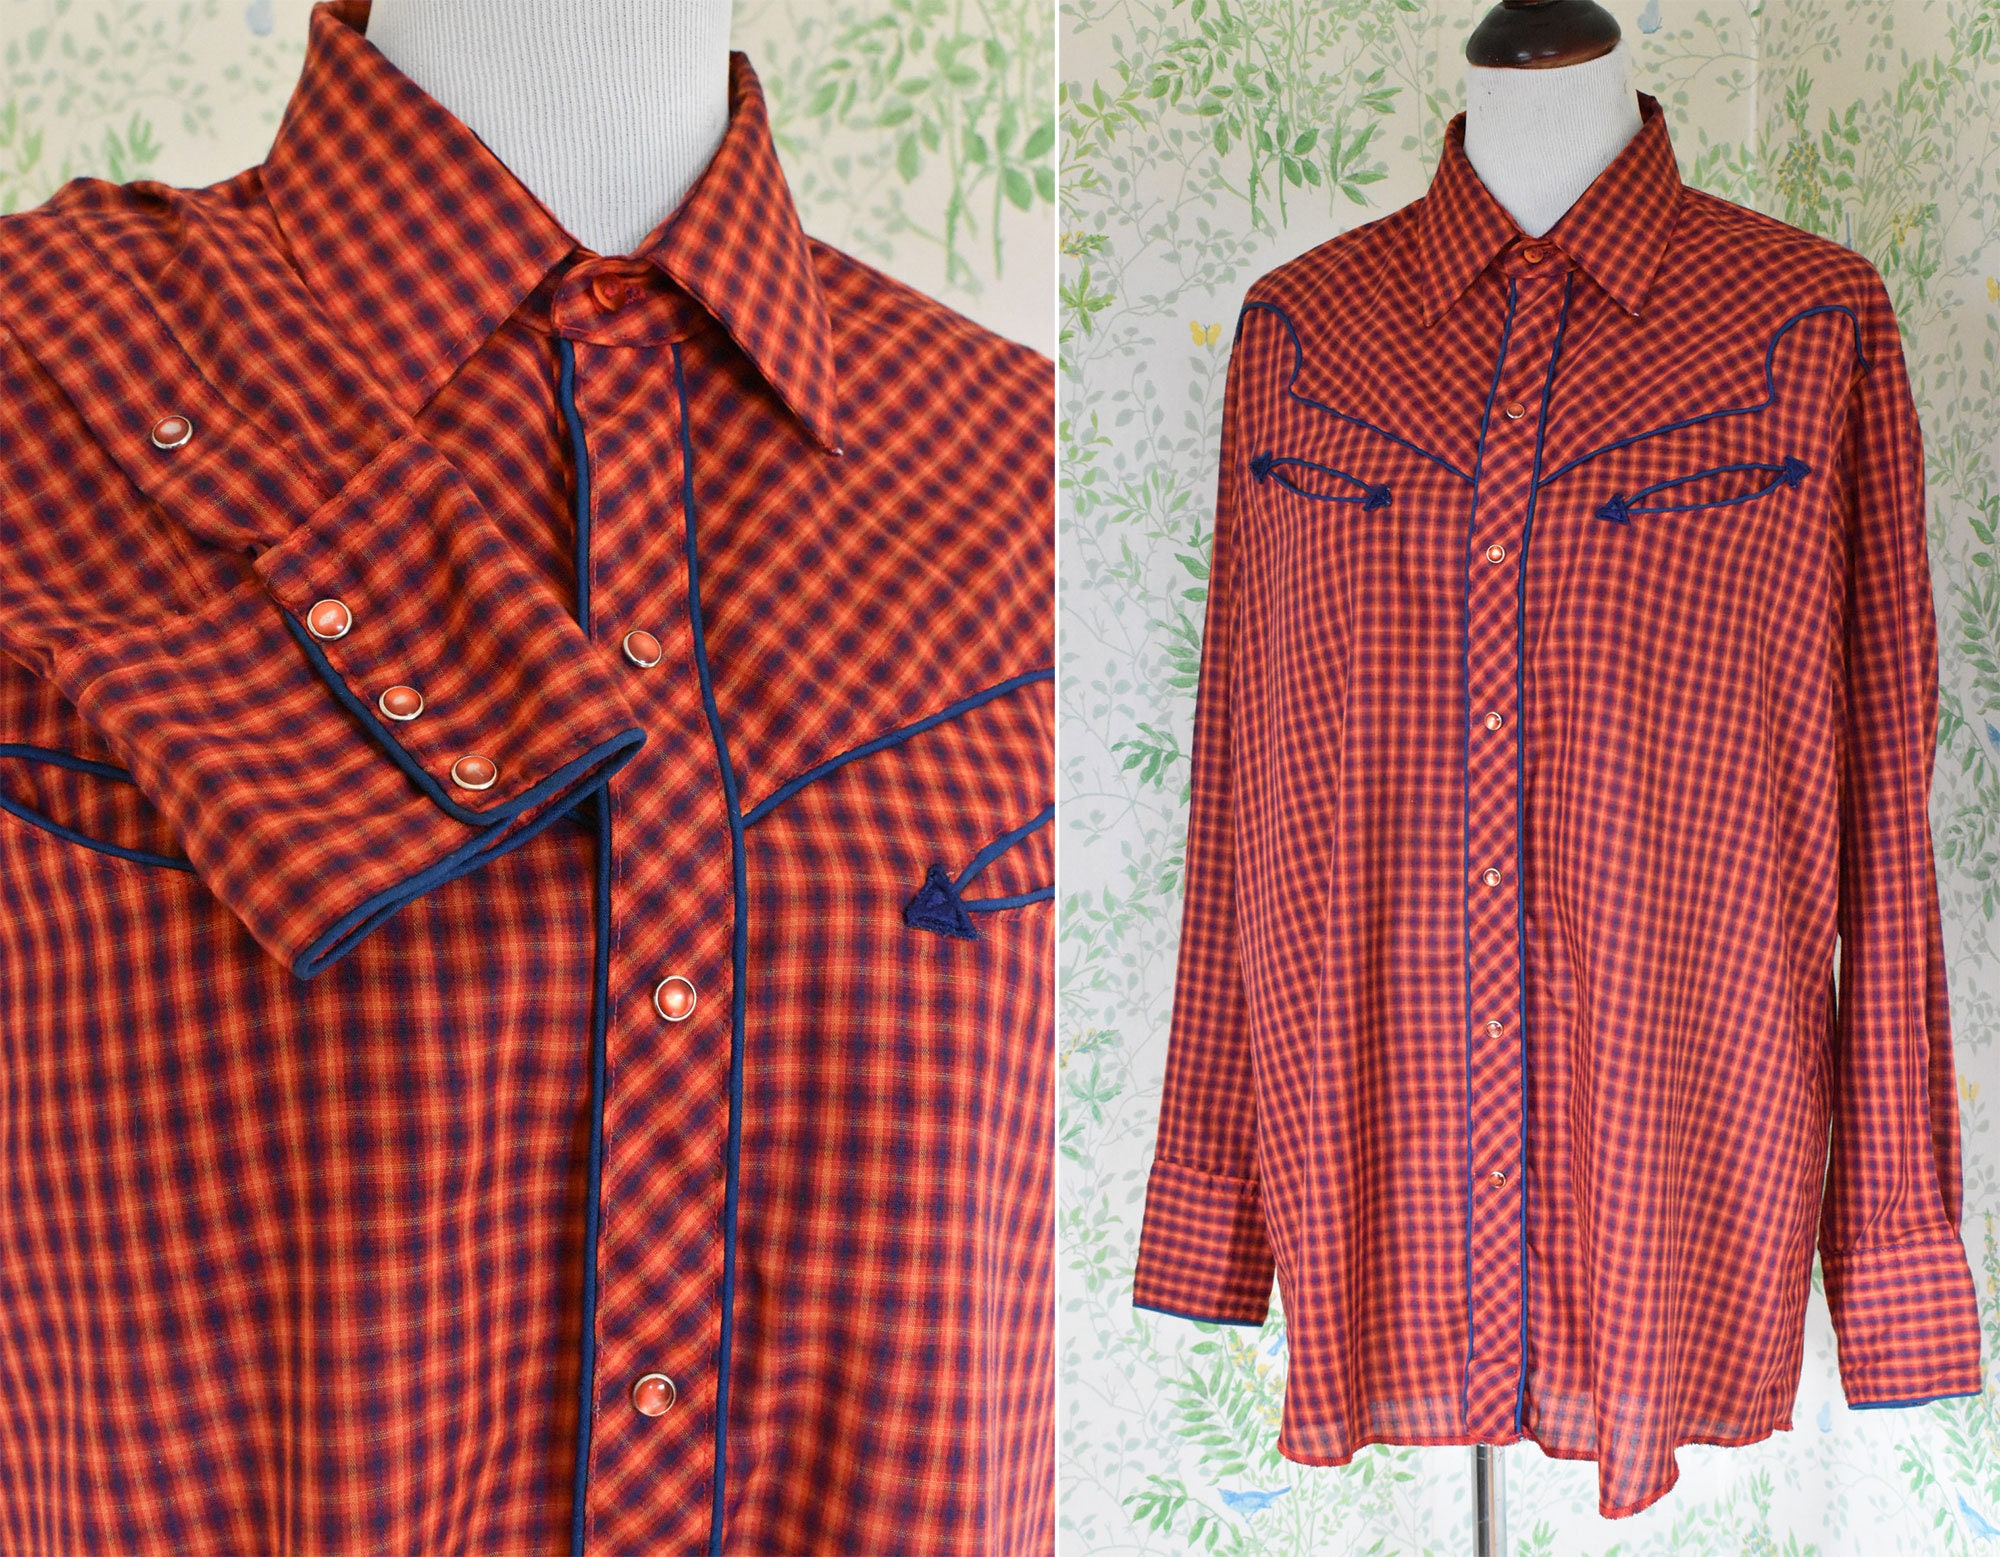 1970s Men's Shirt Styles – Vintage 70s Shirts for Guys Country Plaid 1970s Vintage Mens Bright Red Orange  Navy Western Cowboy Shirt with Pearl Snaps Arrow PocketsSize Large Xl  By Karman $49.99 AT vintagedancer.com